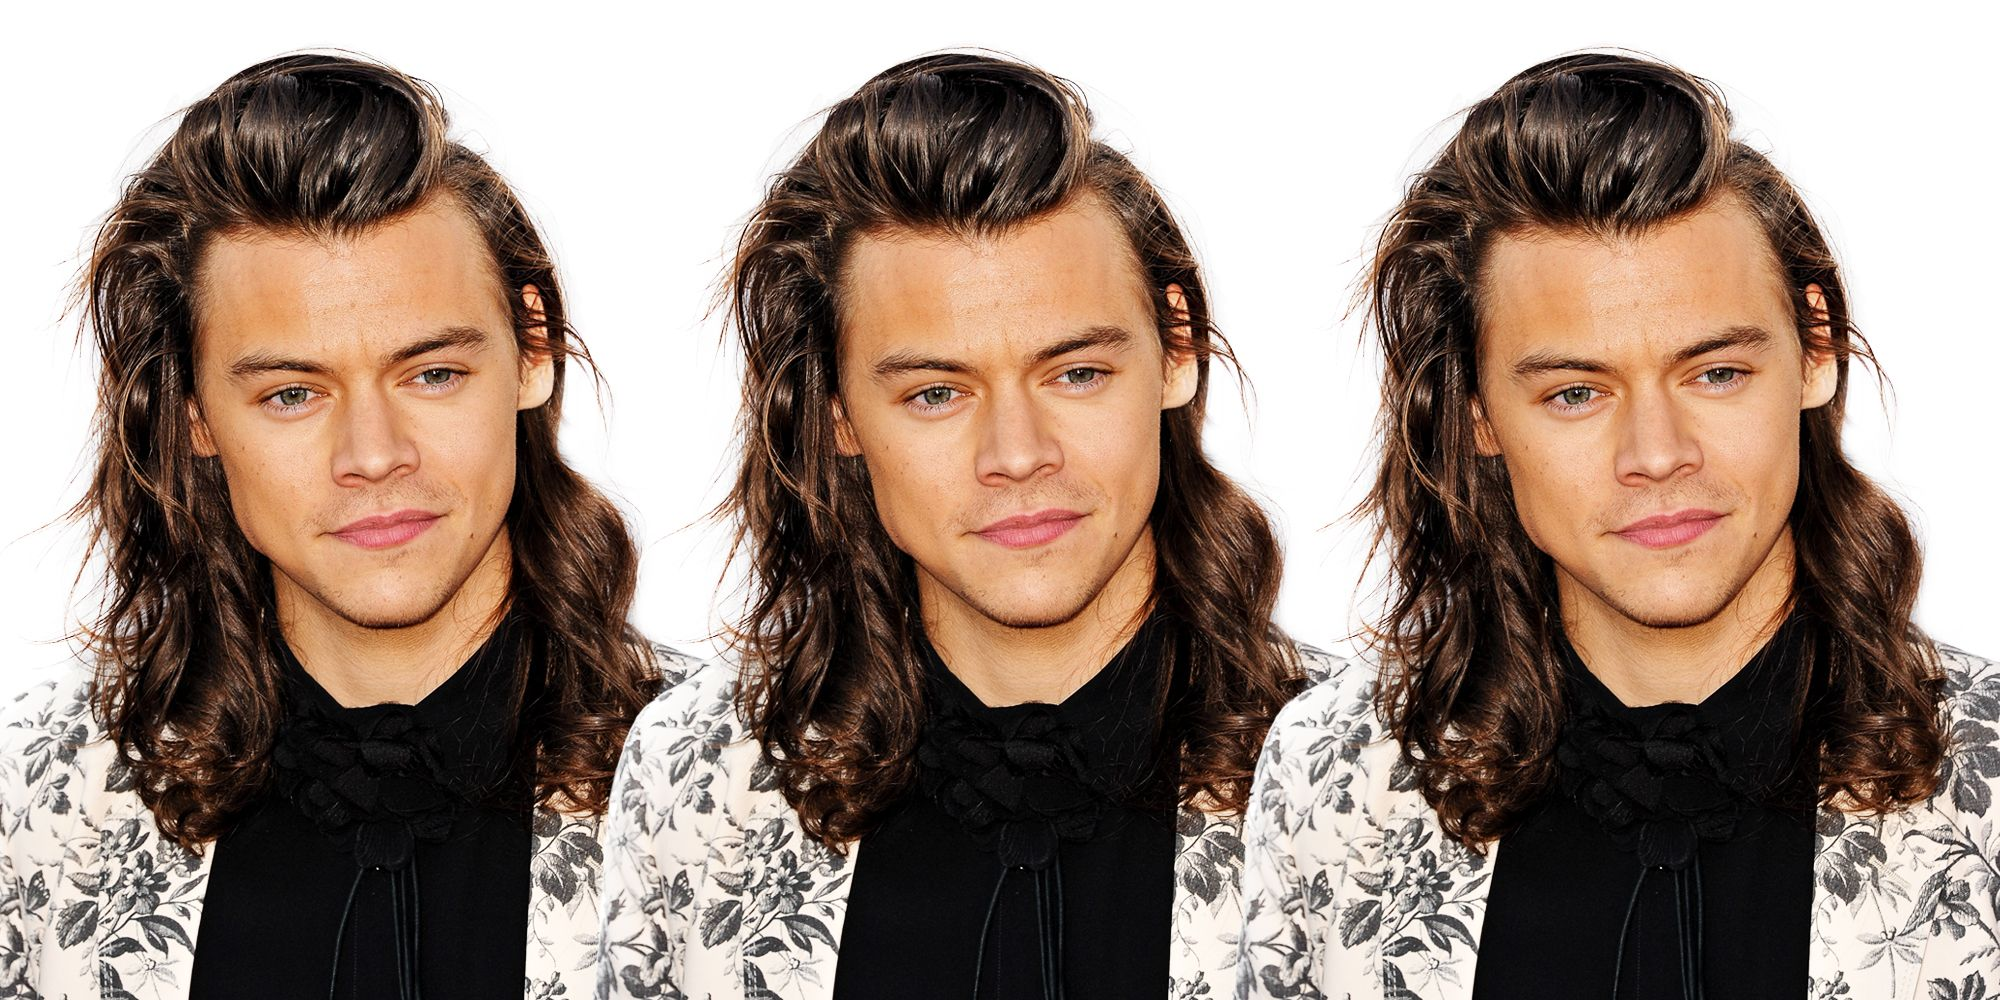 Harry Styles Cut His Hair Harry Styles No Longer Has Long Hair